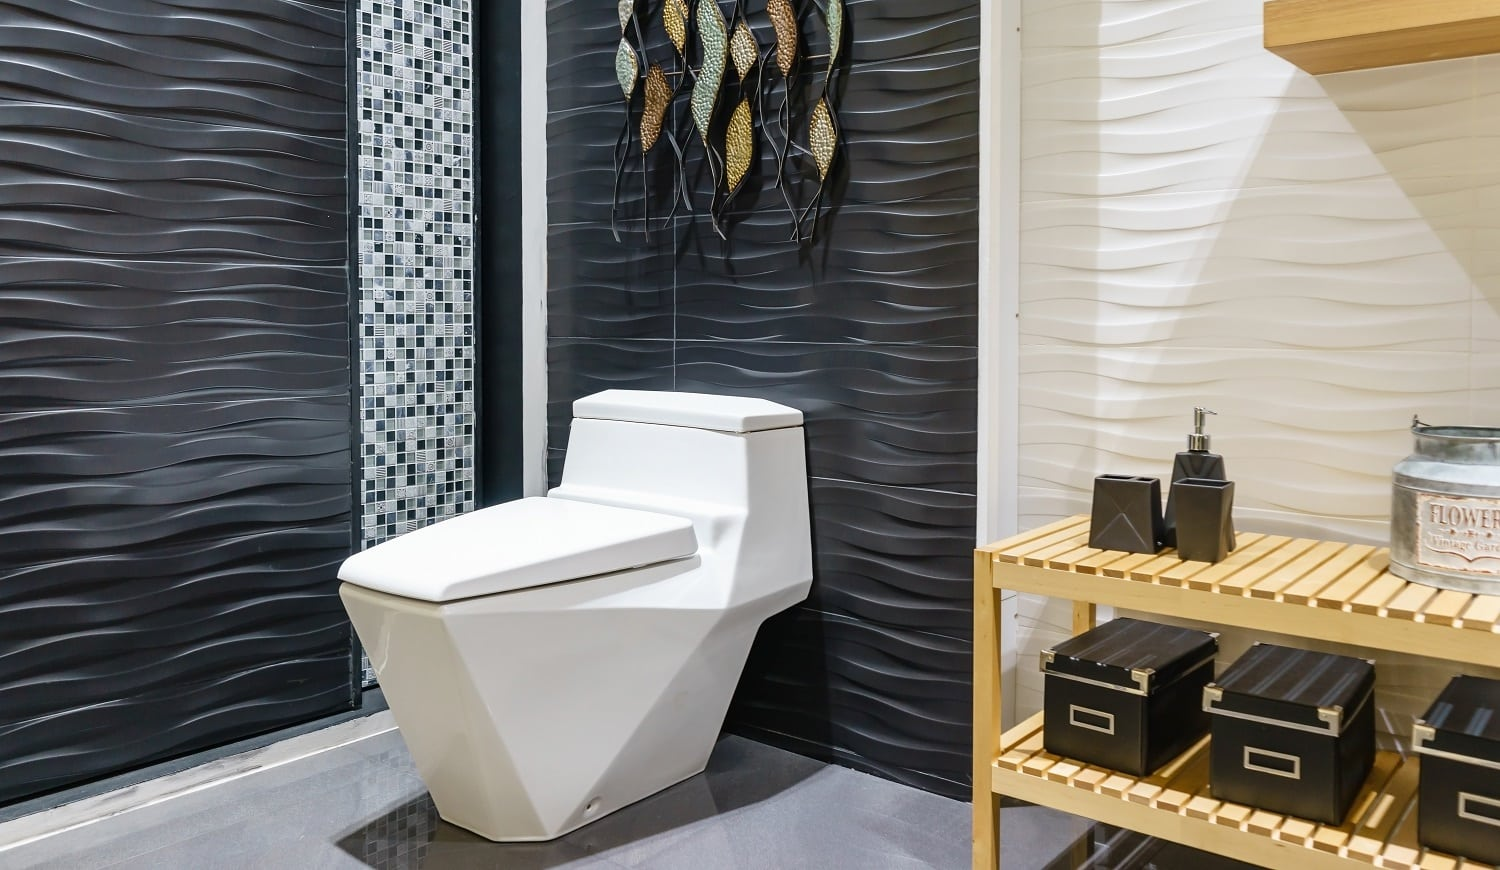 White urinal and washbasin and shower in granite bathroom, Modern house bathroom interior, luxury bathroom